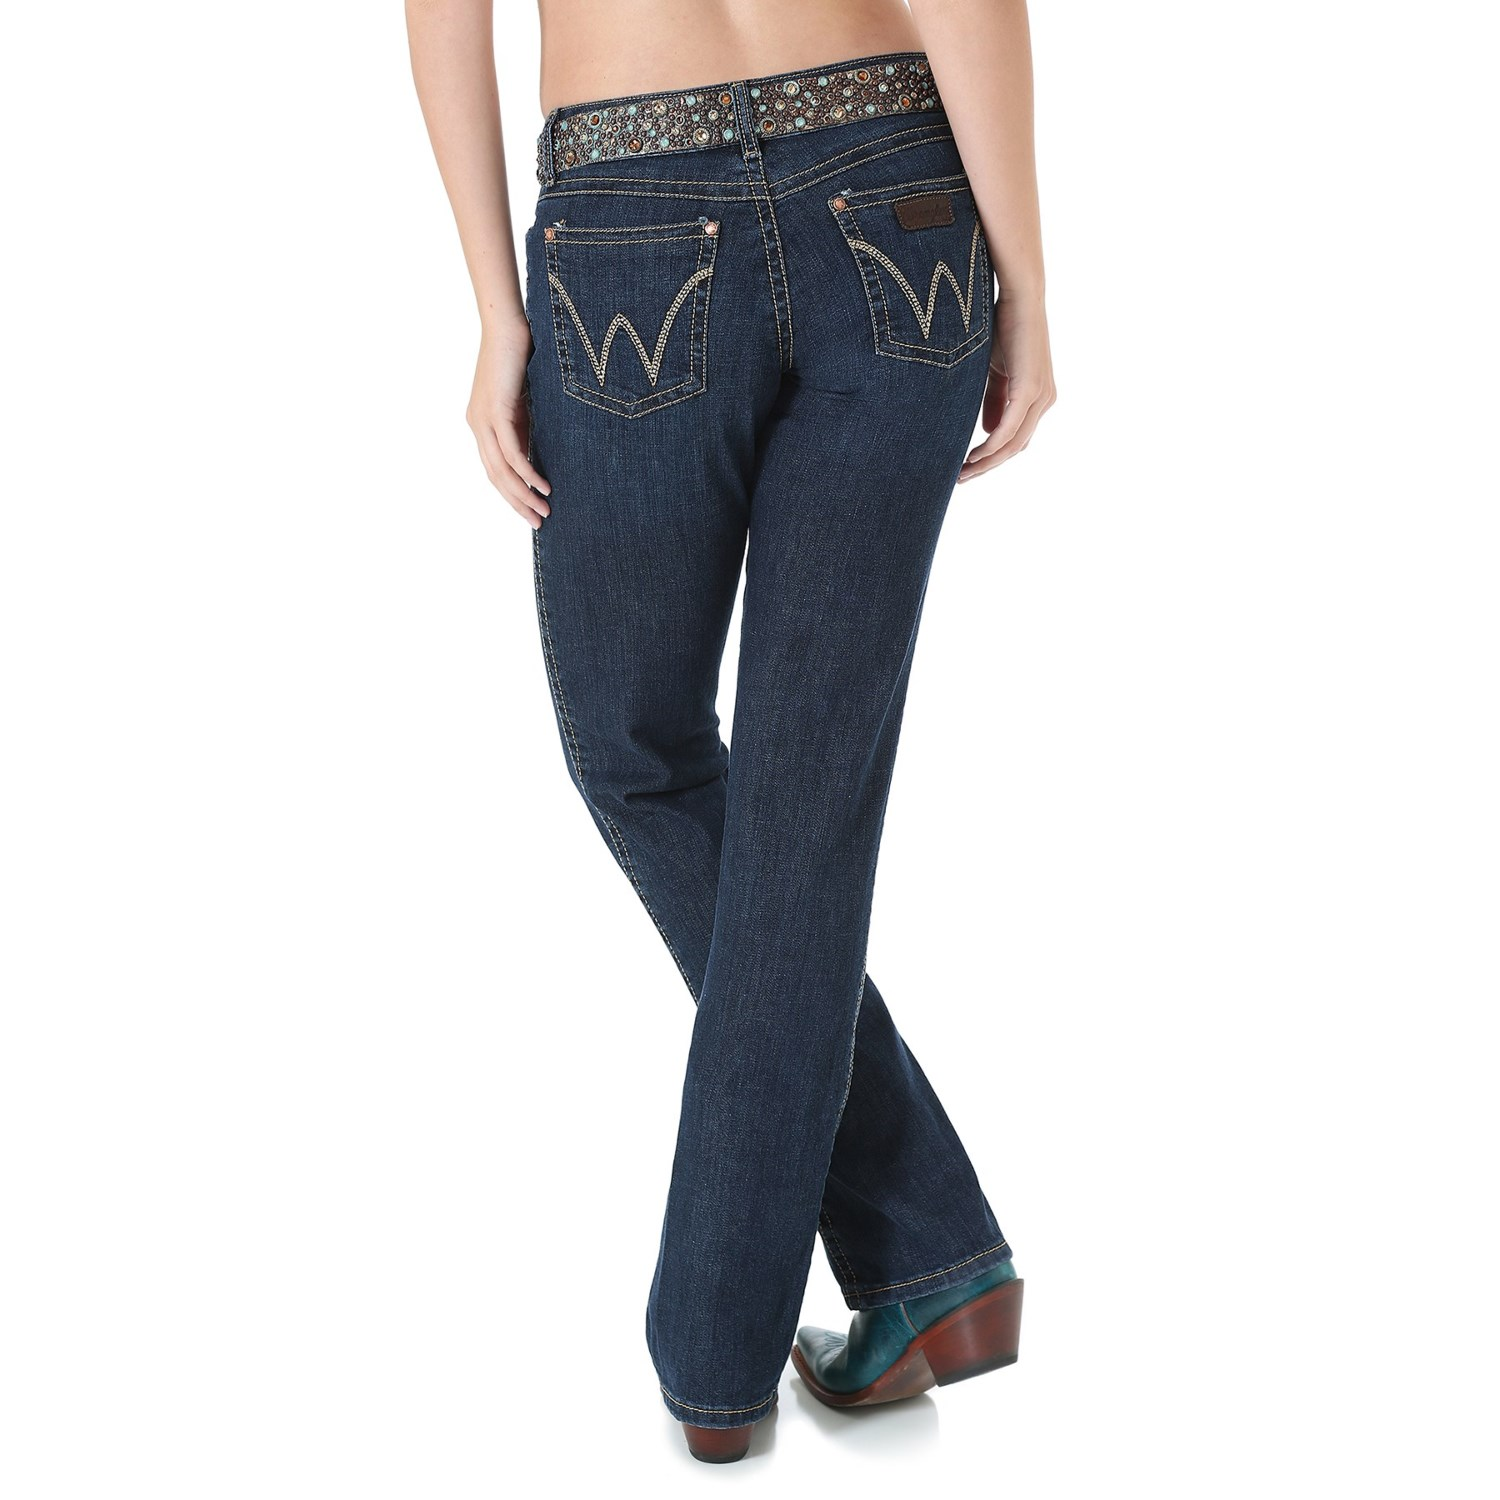 Find great deals on eBay for It Jeans in Women's Jeans. Shop with confidence.